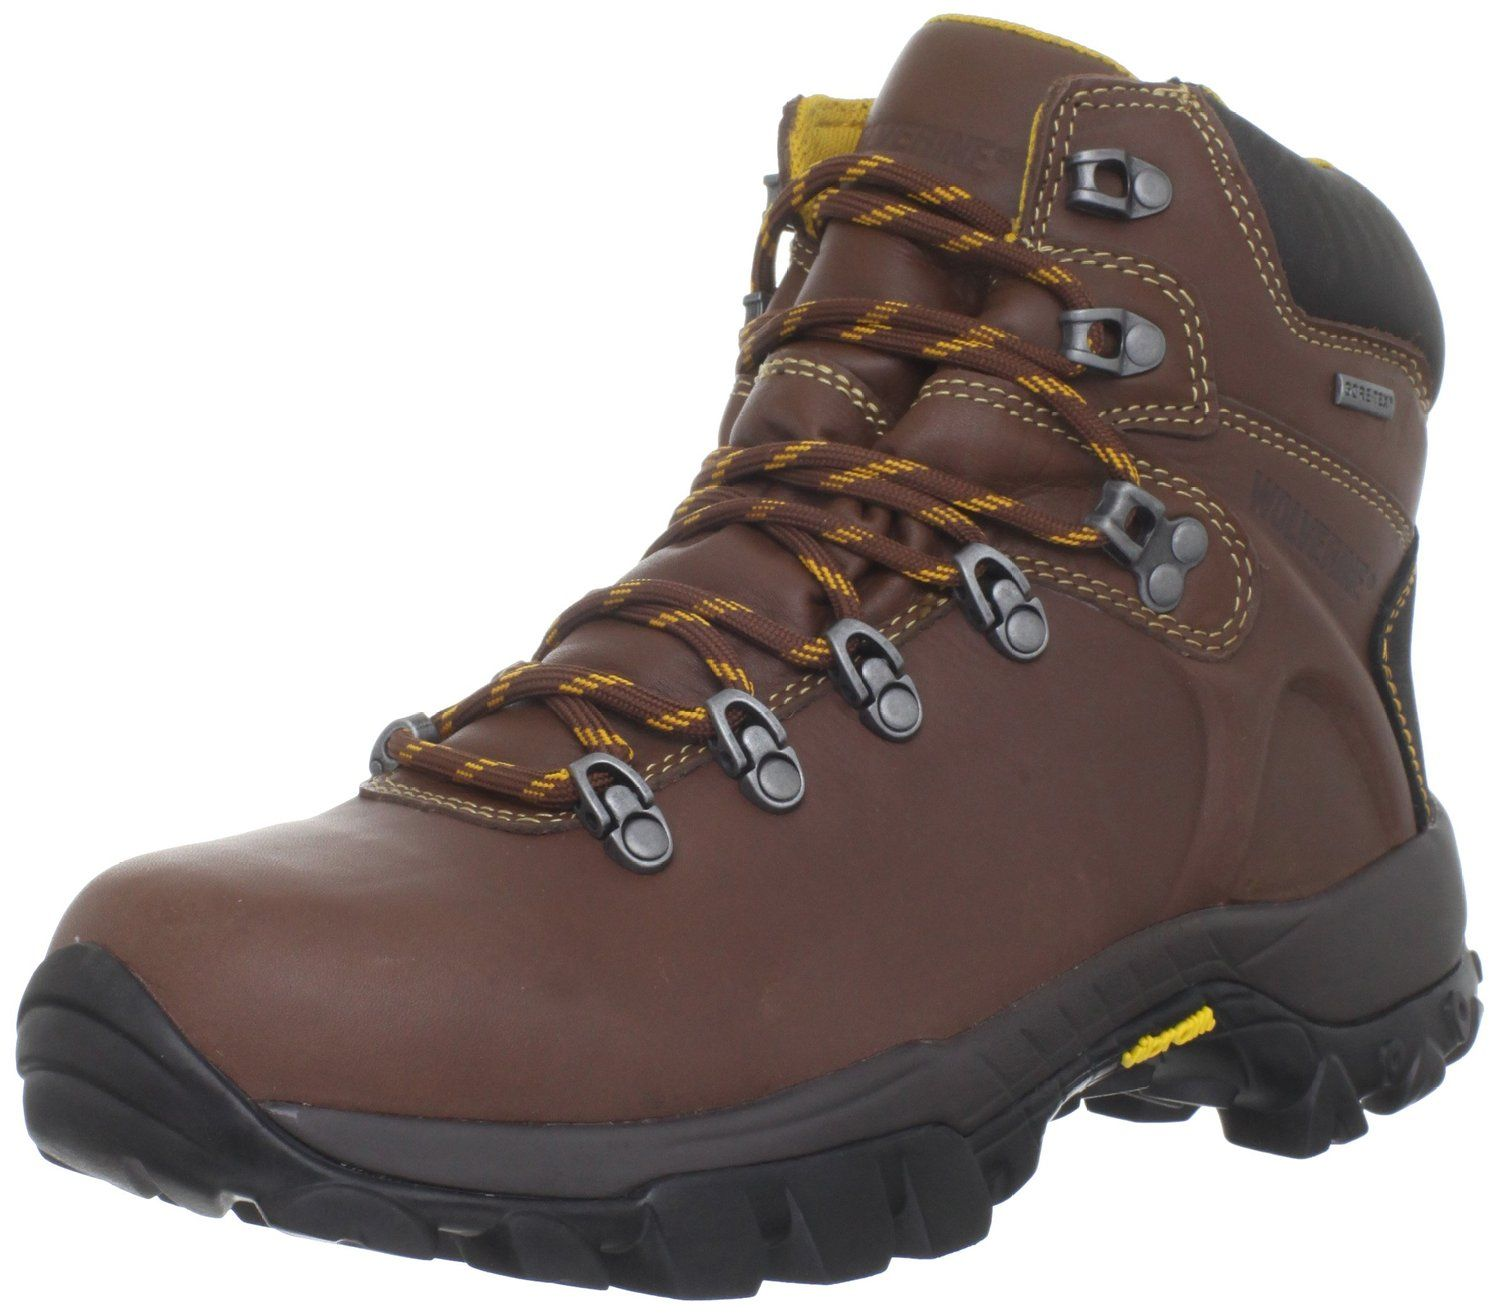 Wolverine Men's Fulcrum Leather Hiking Boot